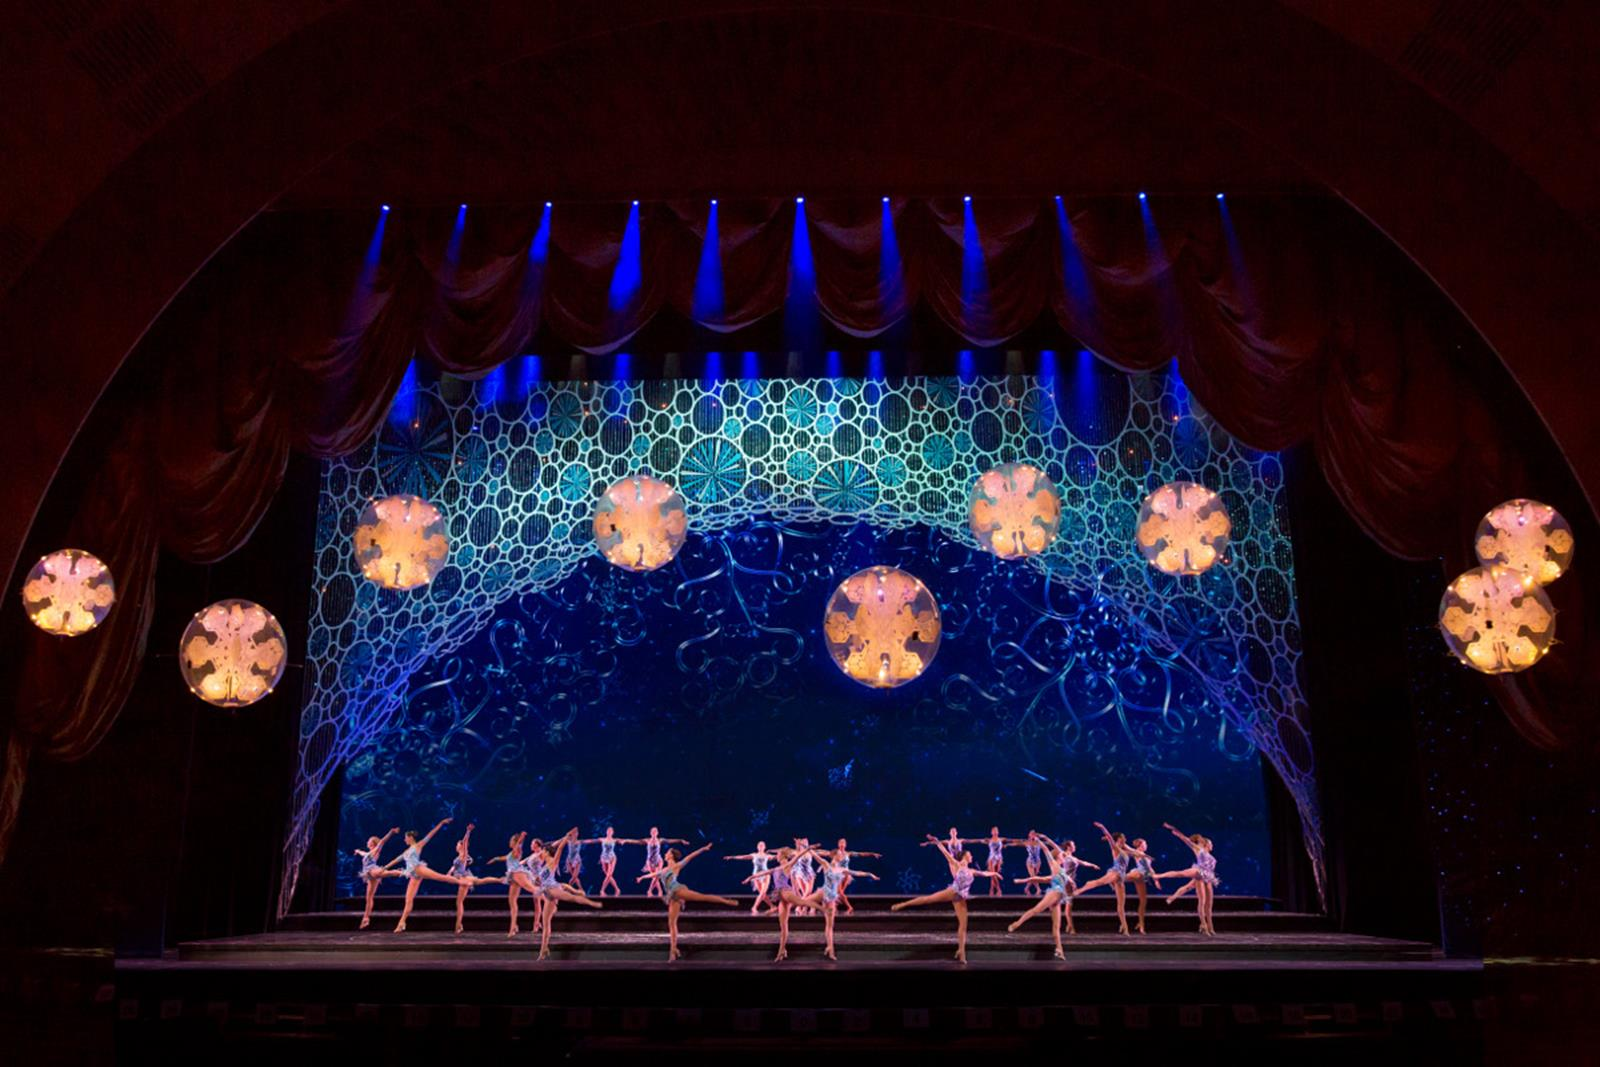 November 5, 2013: Radio City Christmas Spectacular tech rehearsal at Radio City Music Hall